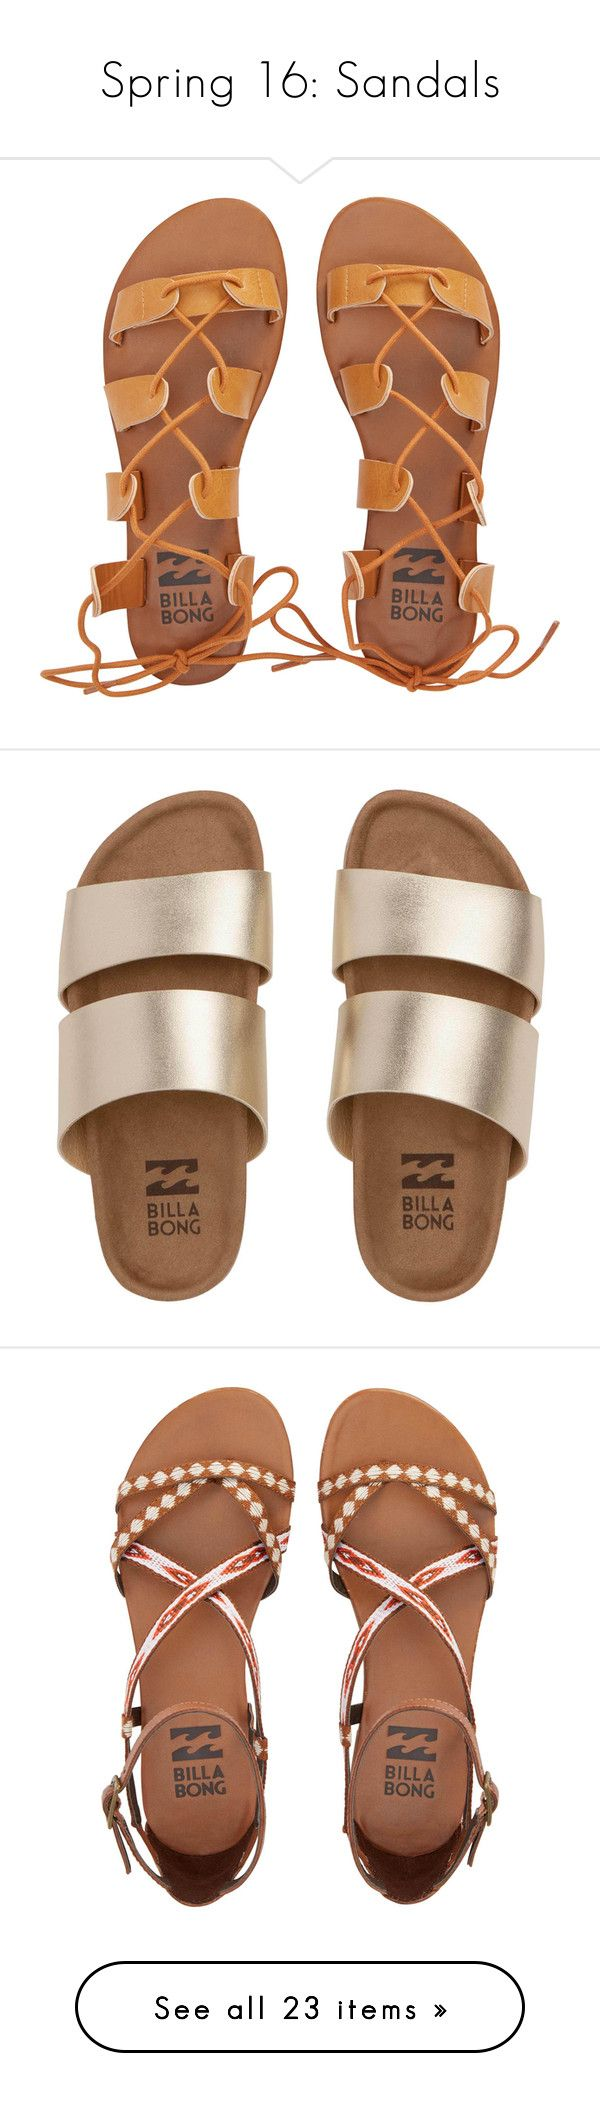 """Spring 16: Sandals"" by billabongusa ❤ liked on Polyvore featuring shoes, sandals, camel, footwear, gladiator sandals shoes, billabong sandals, camel sandals, laced sandals, laced shoes and gold"